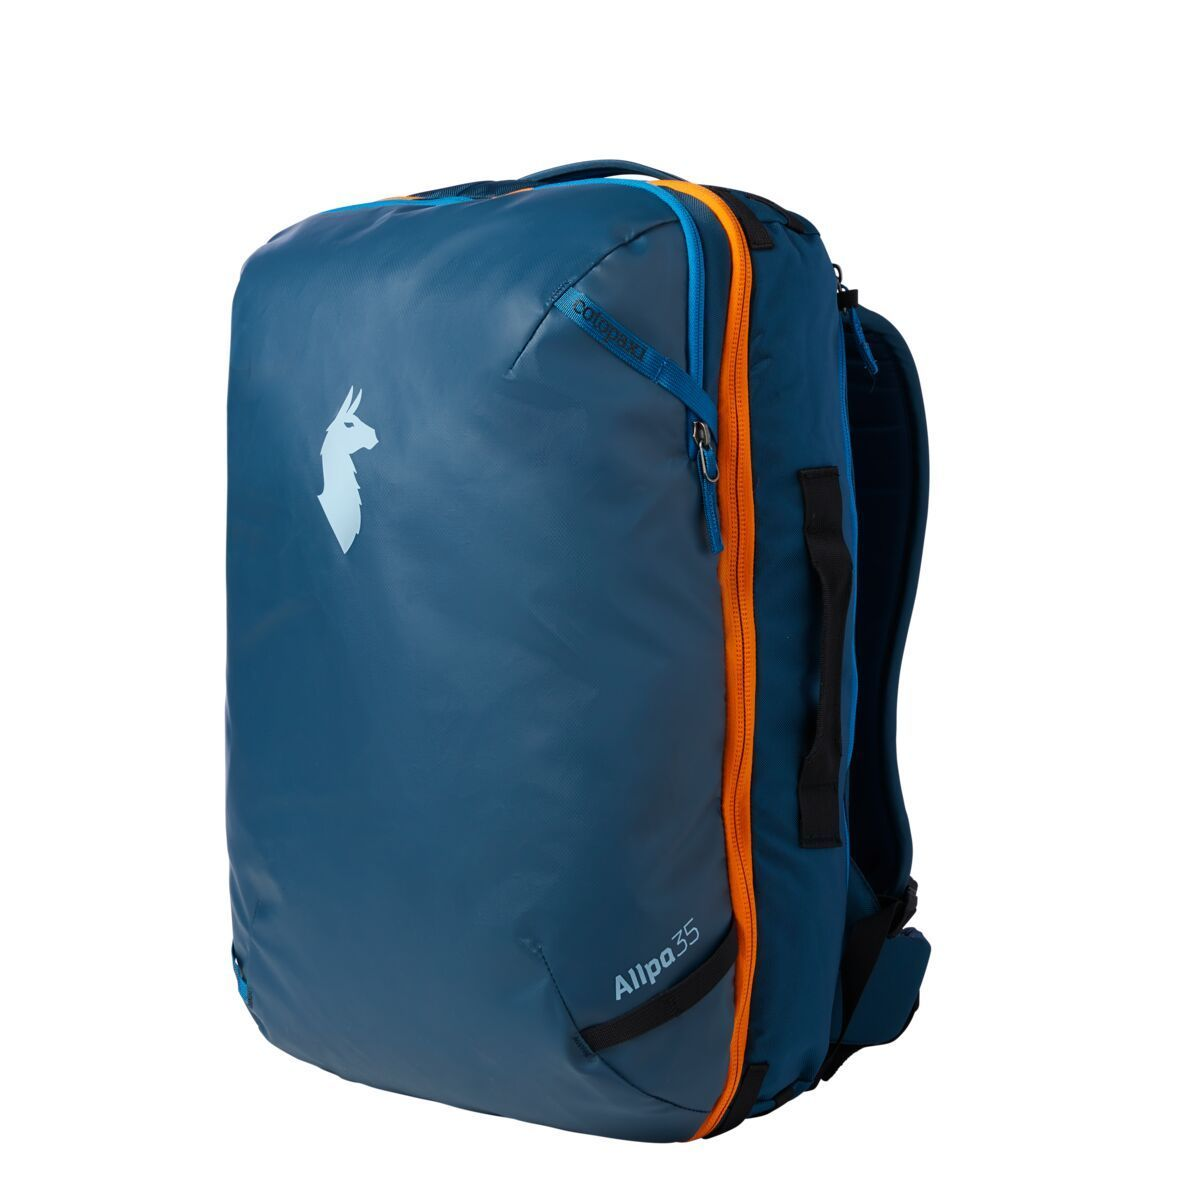 Cotopaxi Allpa Travel Pack 35L